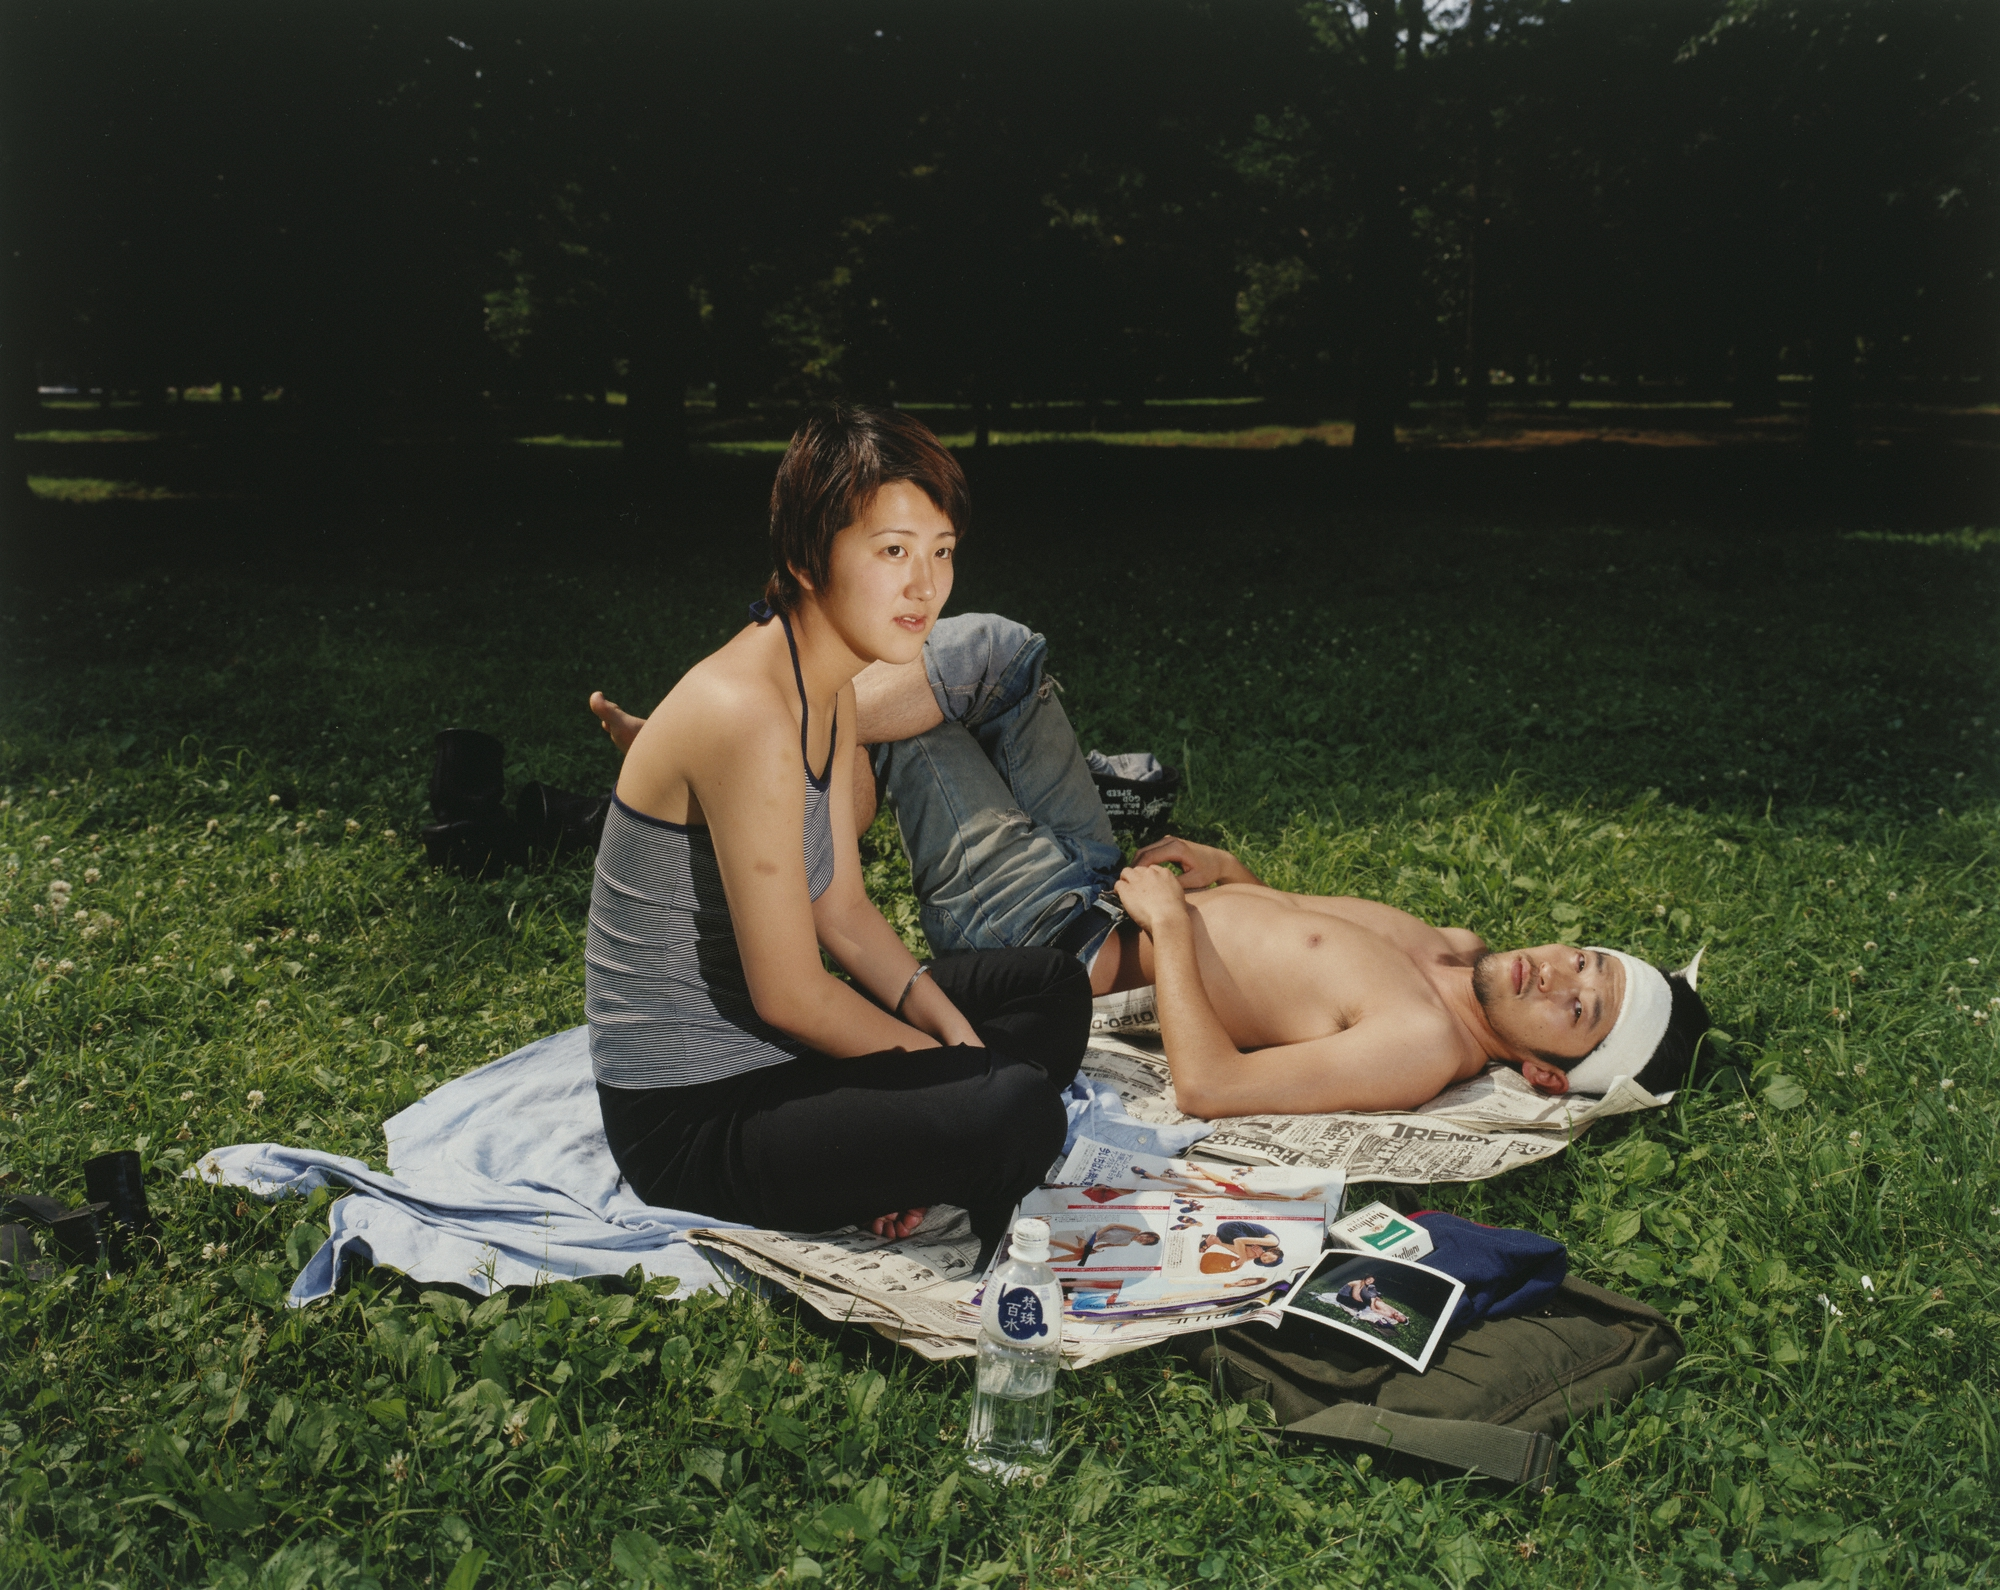 Picnic #2, 1998, Masato Seto. 16 15/16 x 21 7/16 inches. J. Paul Getty Museum. Purchased with funds provided by the Photographs Council. © Masato Seto